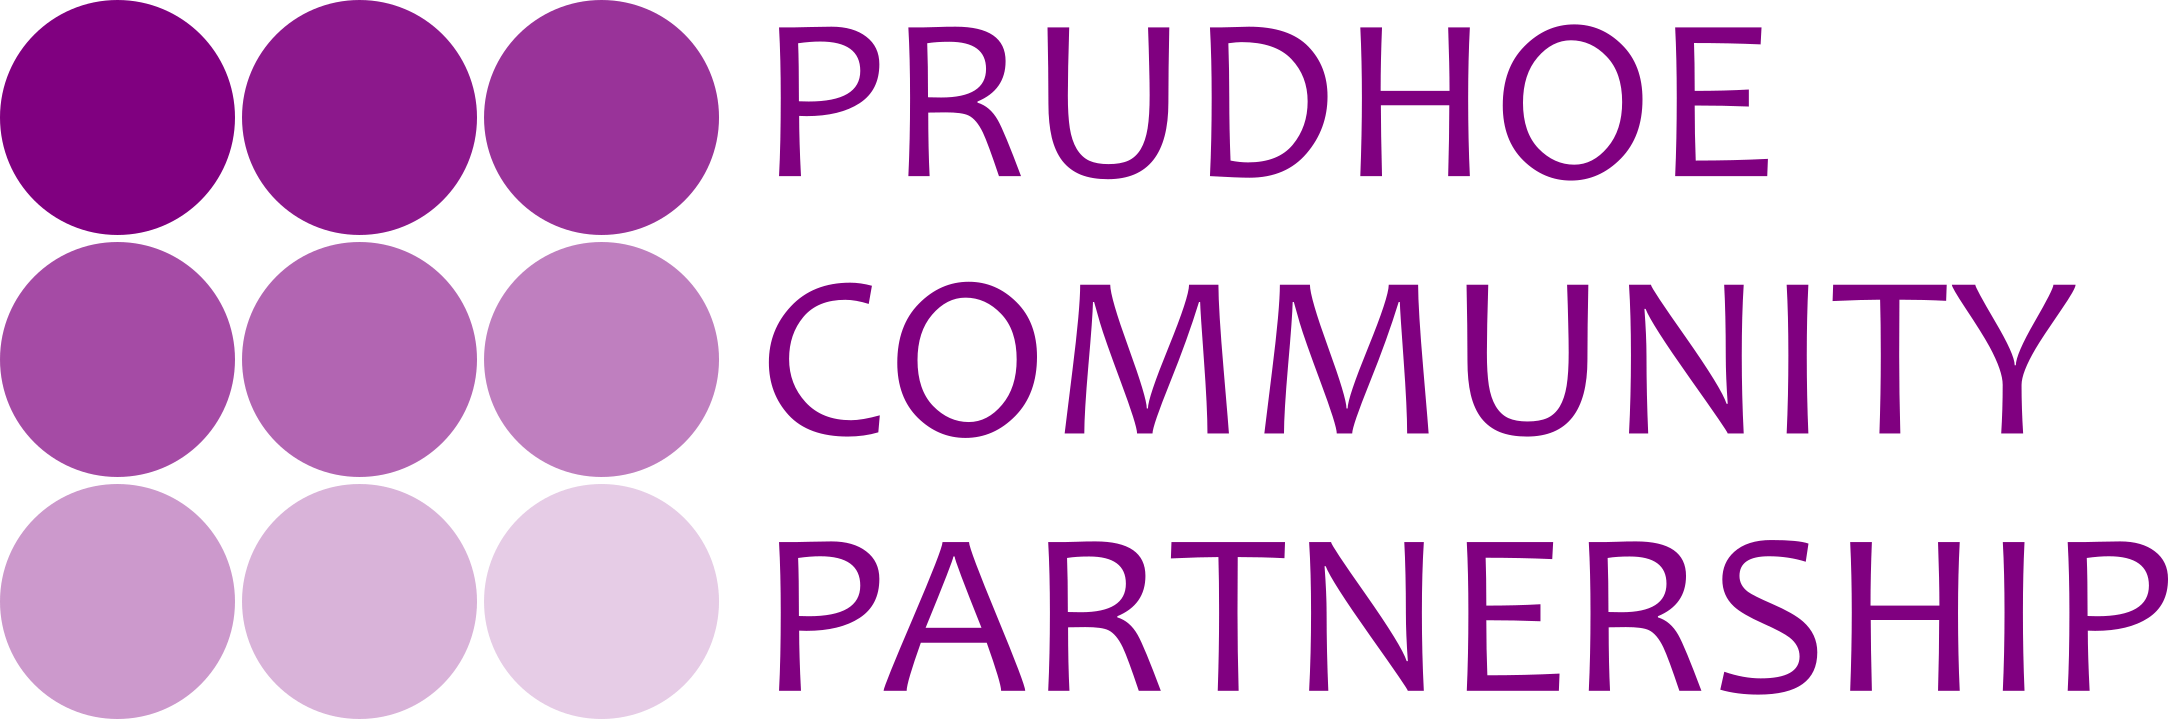 Prudhoe Community Partnership